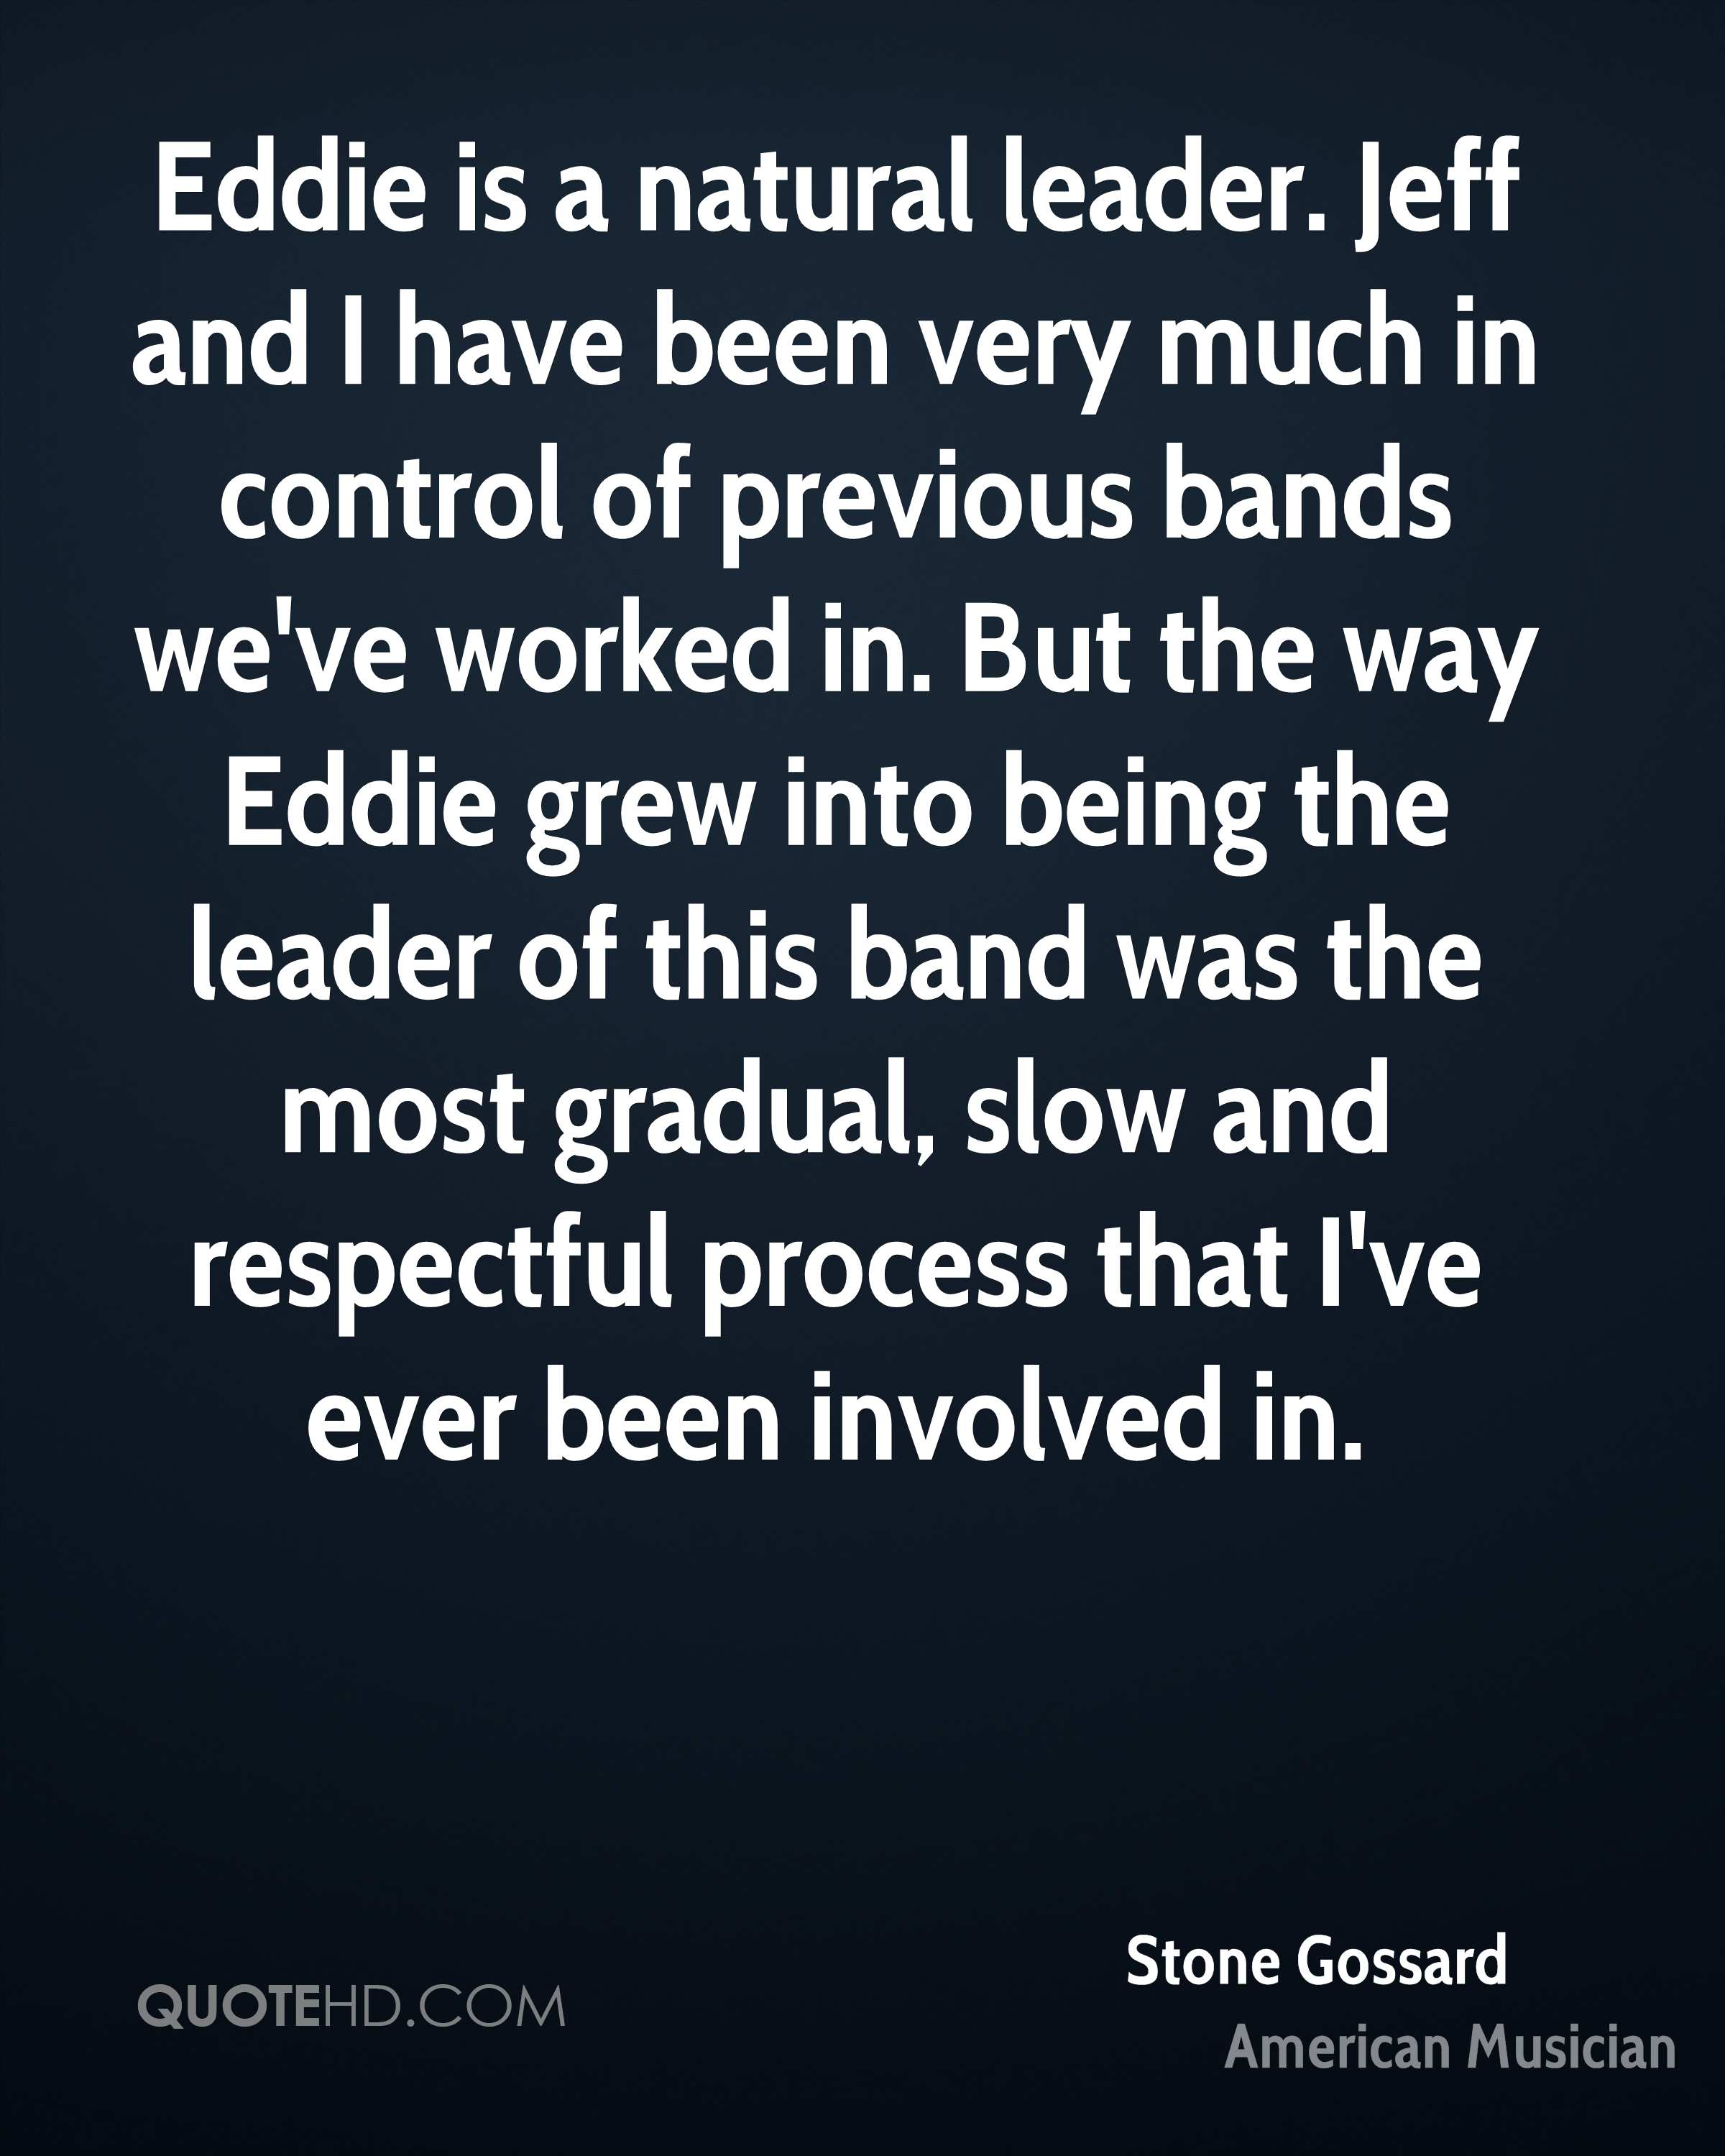 Eddie is a natural leader. Jeff and I have been very much in control of previous bands we've worked in. But the way Eddie grew into being the leader of this band was the most gradual, slow and respectful process that I've ever been involved in.